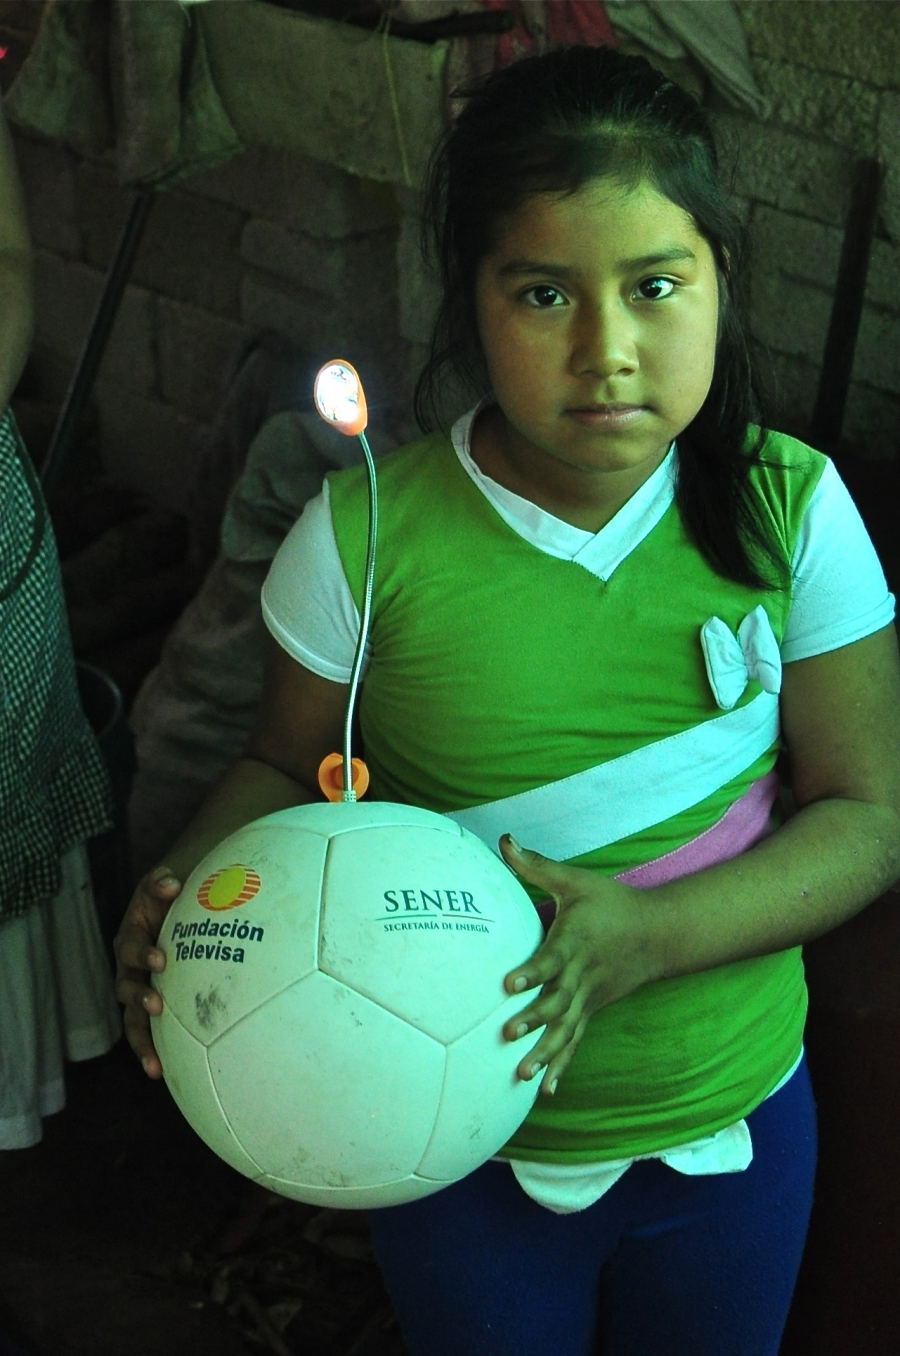 Dora Natalia Antonio Ramos, 7, was the only Soccket recipient interviewed whose ball and lamp still worked well.